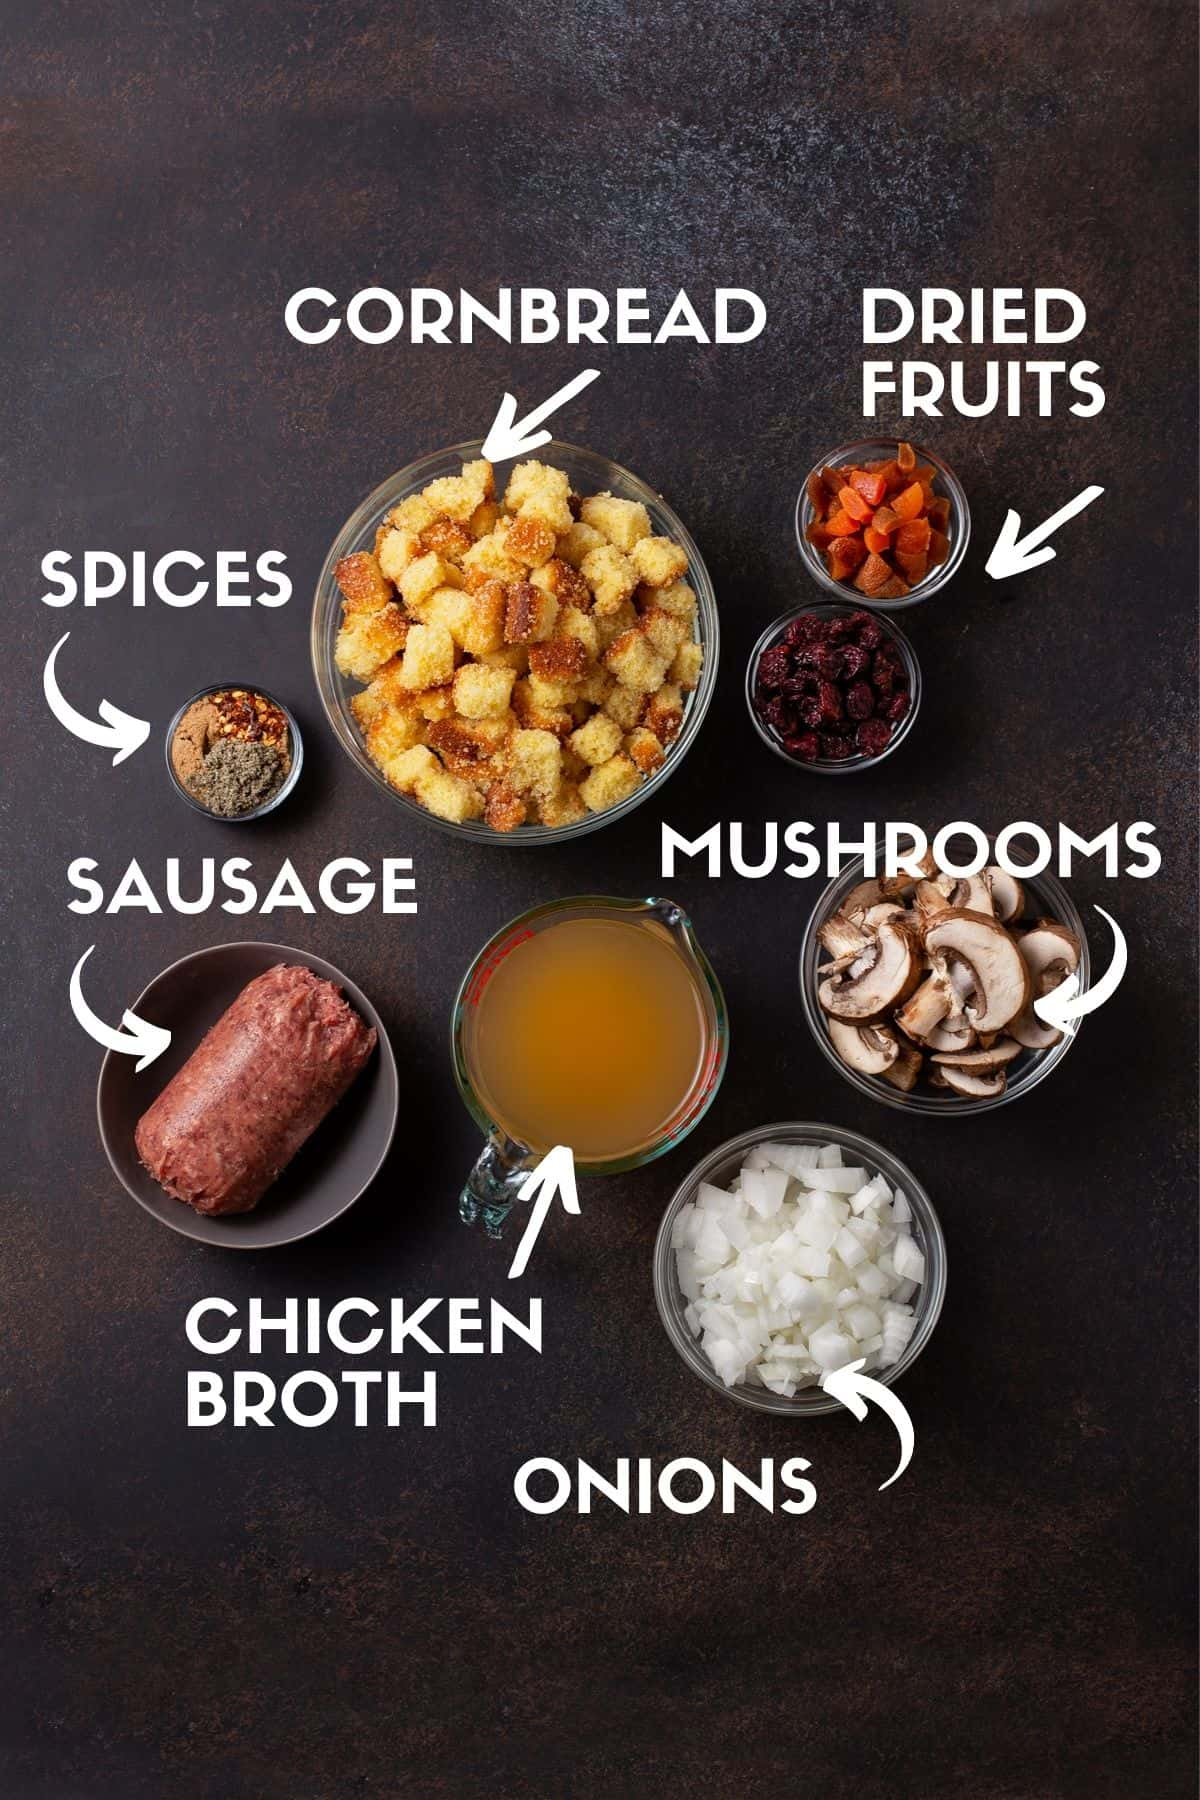 ingredients for cornbread stuffing including sausage, cornbread, onions, mushrooms, chicken broth, dried fruits and spices.